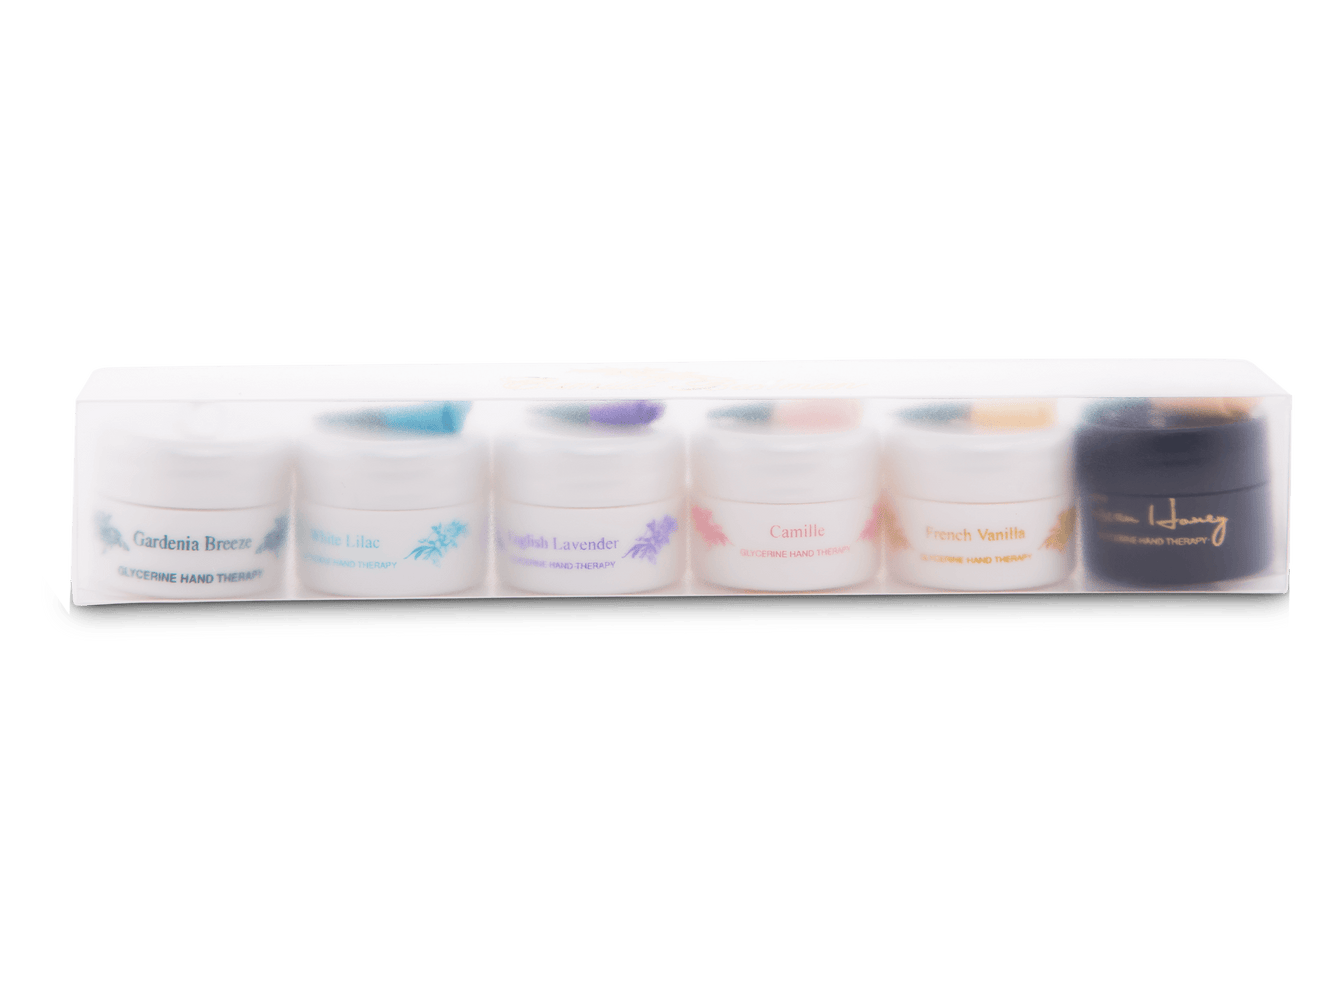 GLYCERINE HAND THERAPY™ Small Pot Sampler - Camille Beckman